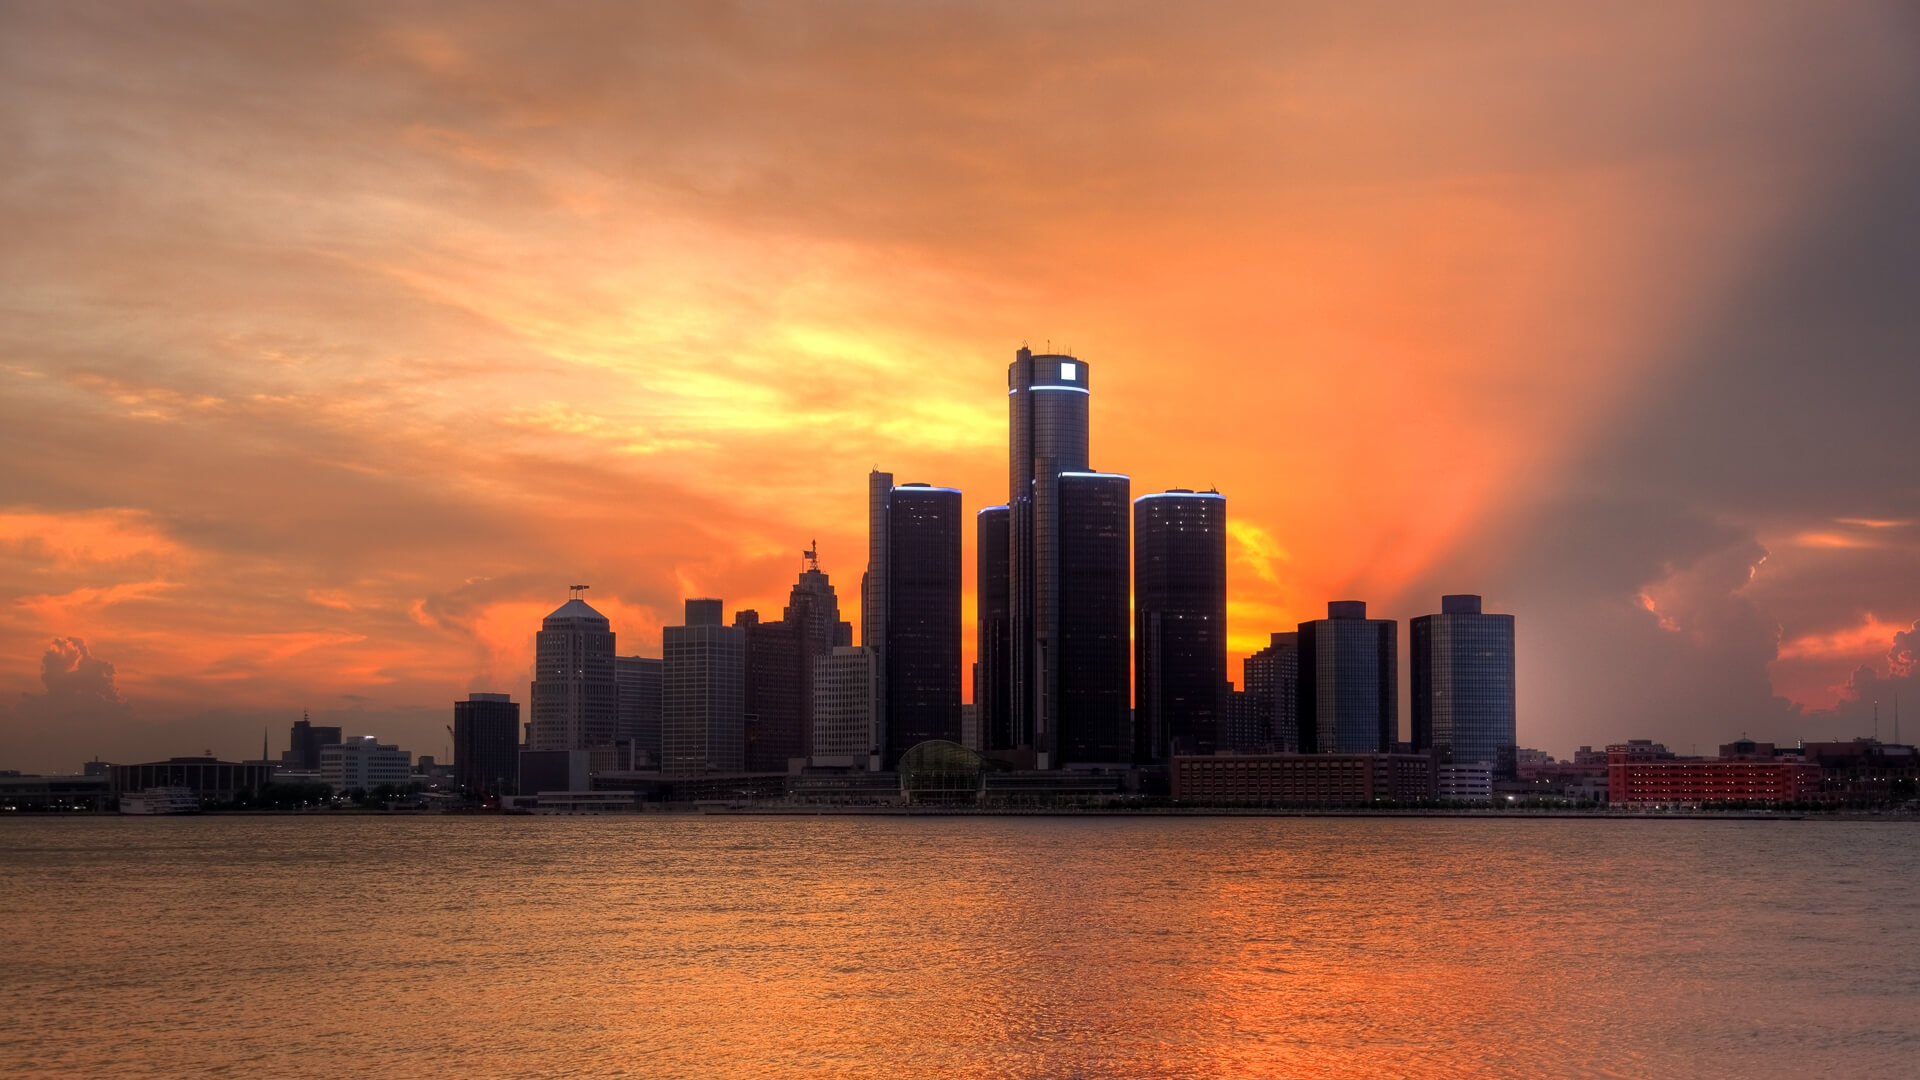 Detroit city skyline along the Detroit River at sunset.